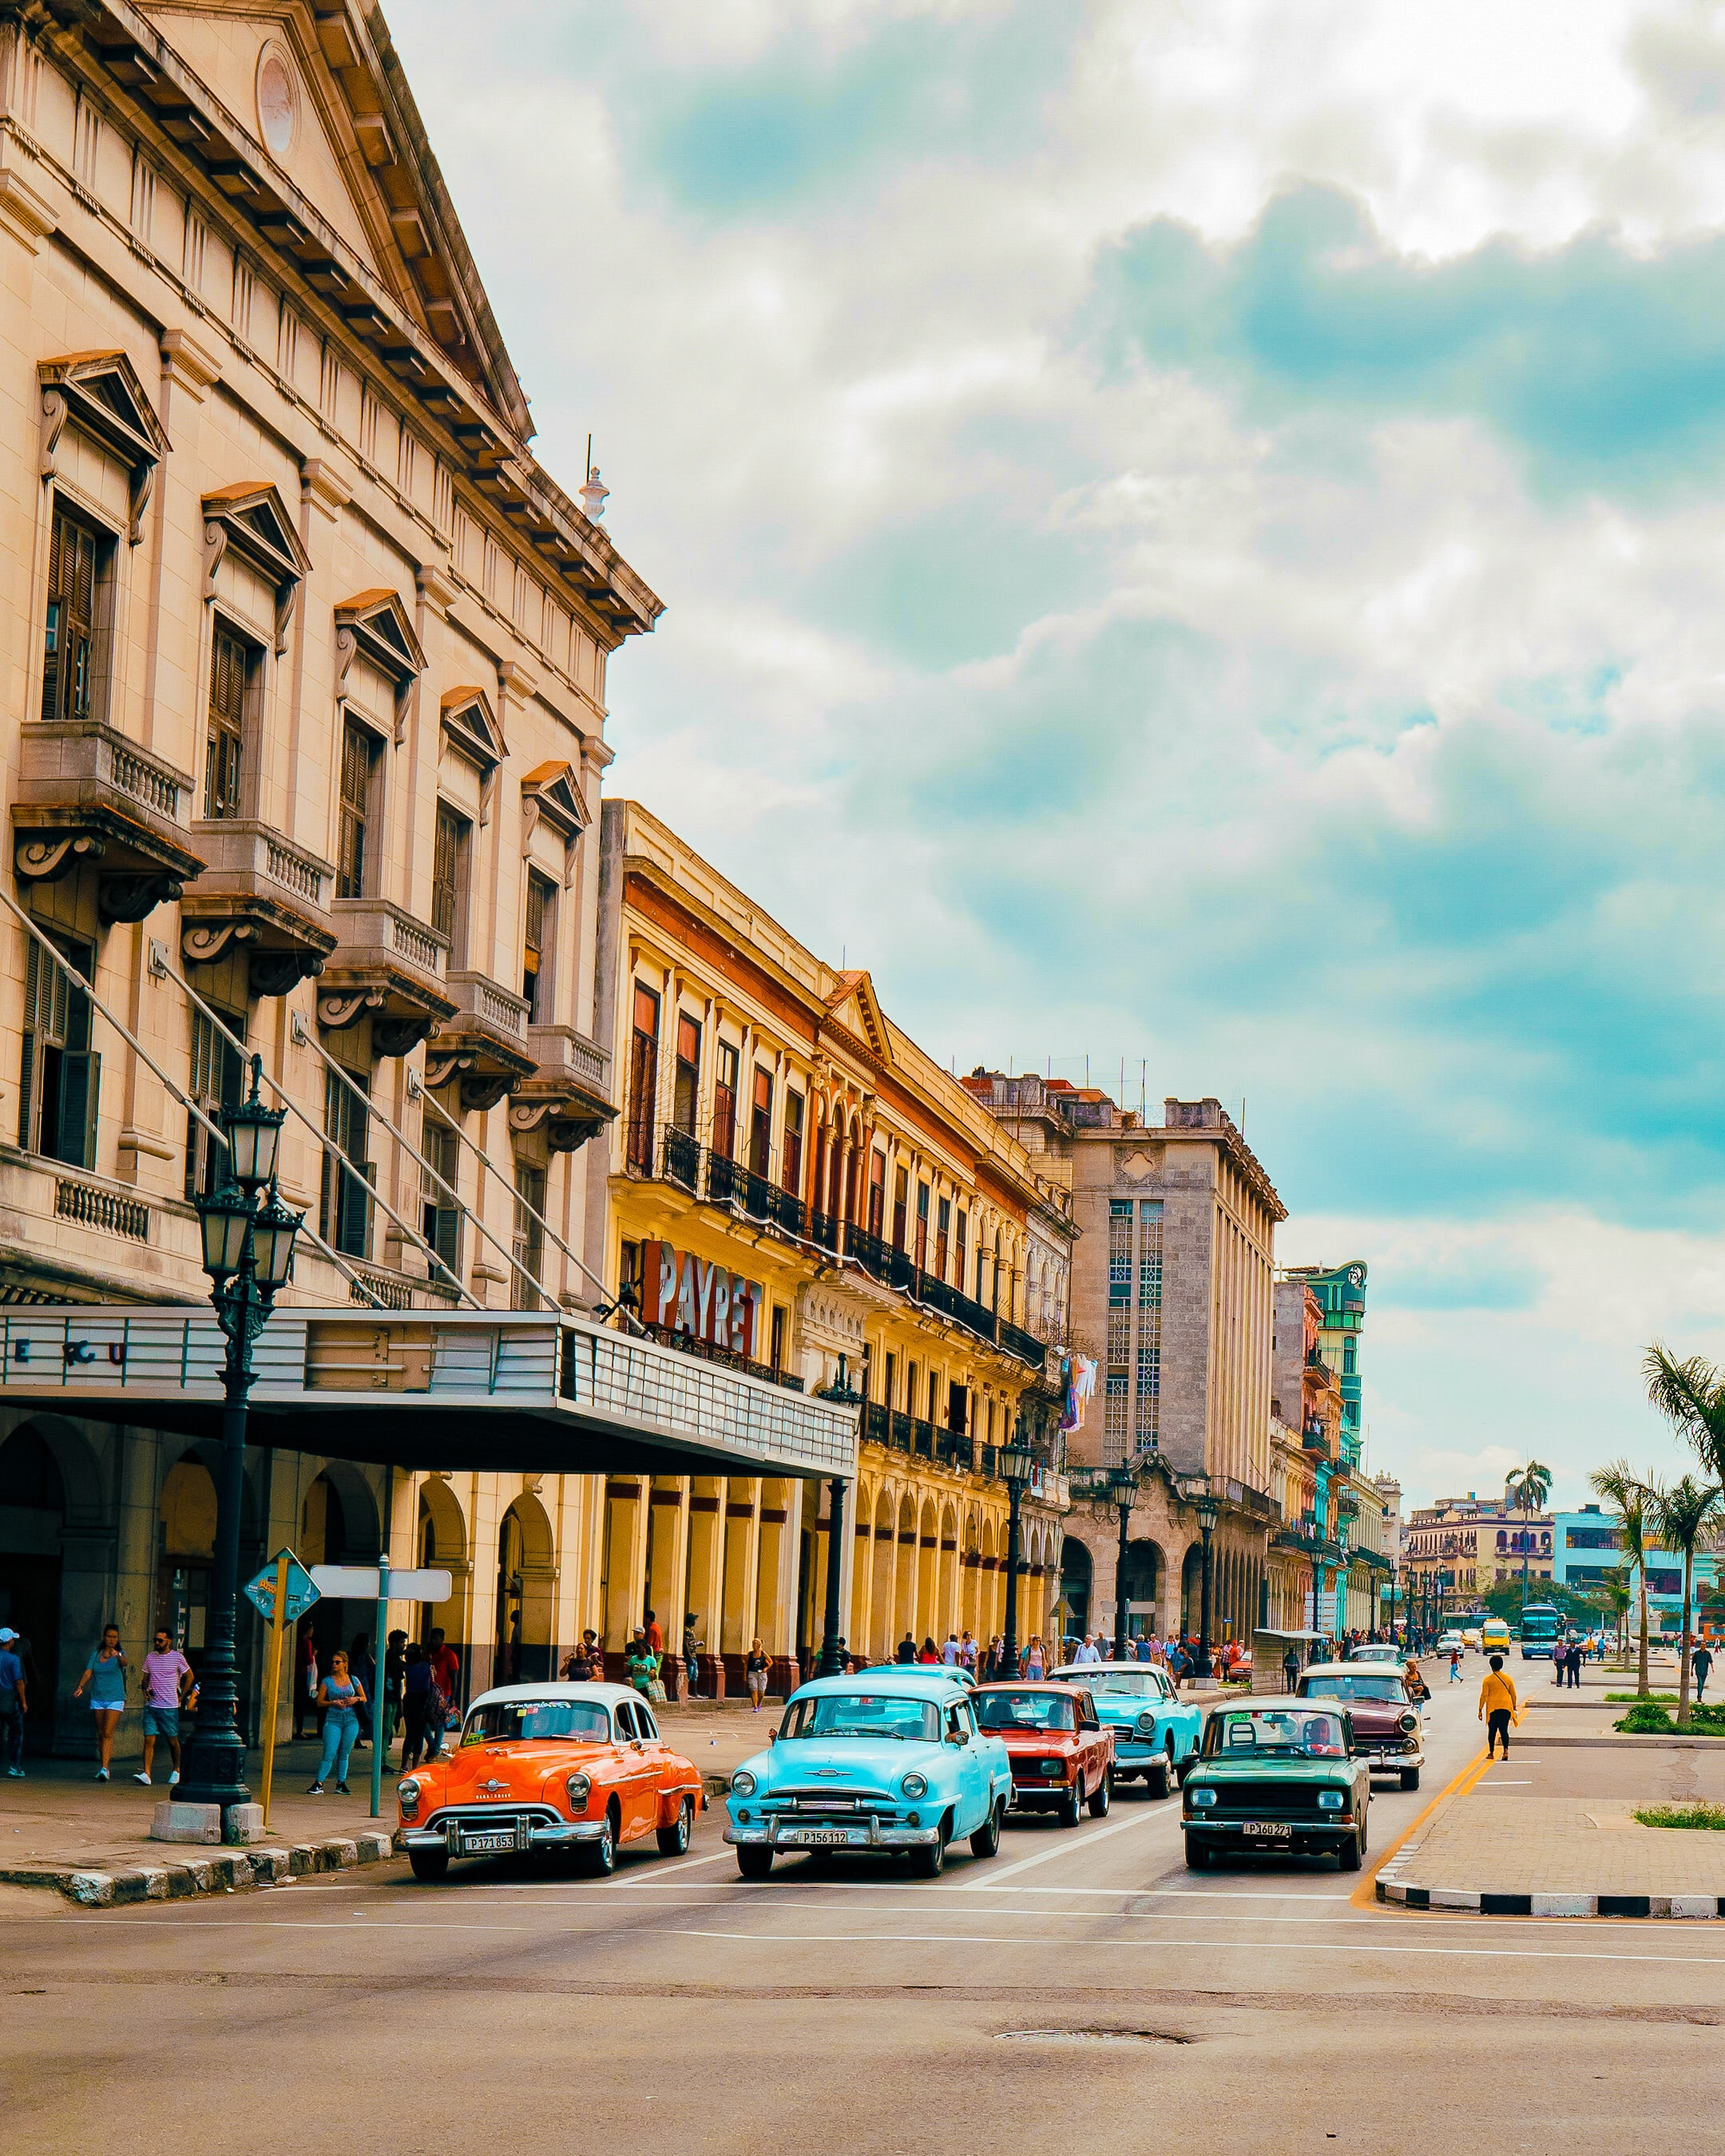 Traffic in front of the famous Payret Theater in Havana, Cuba